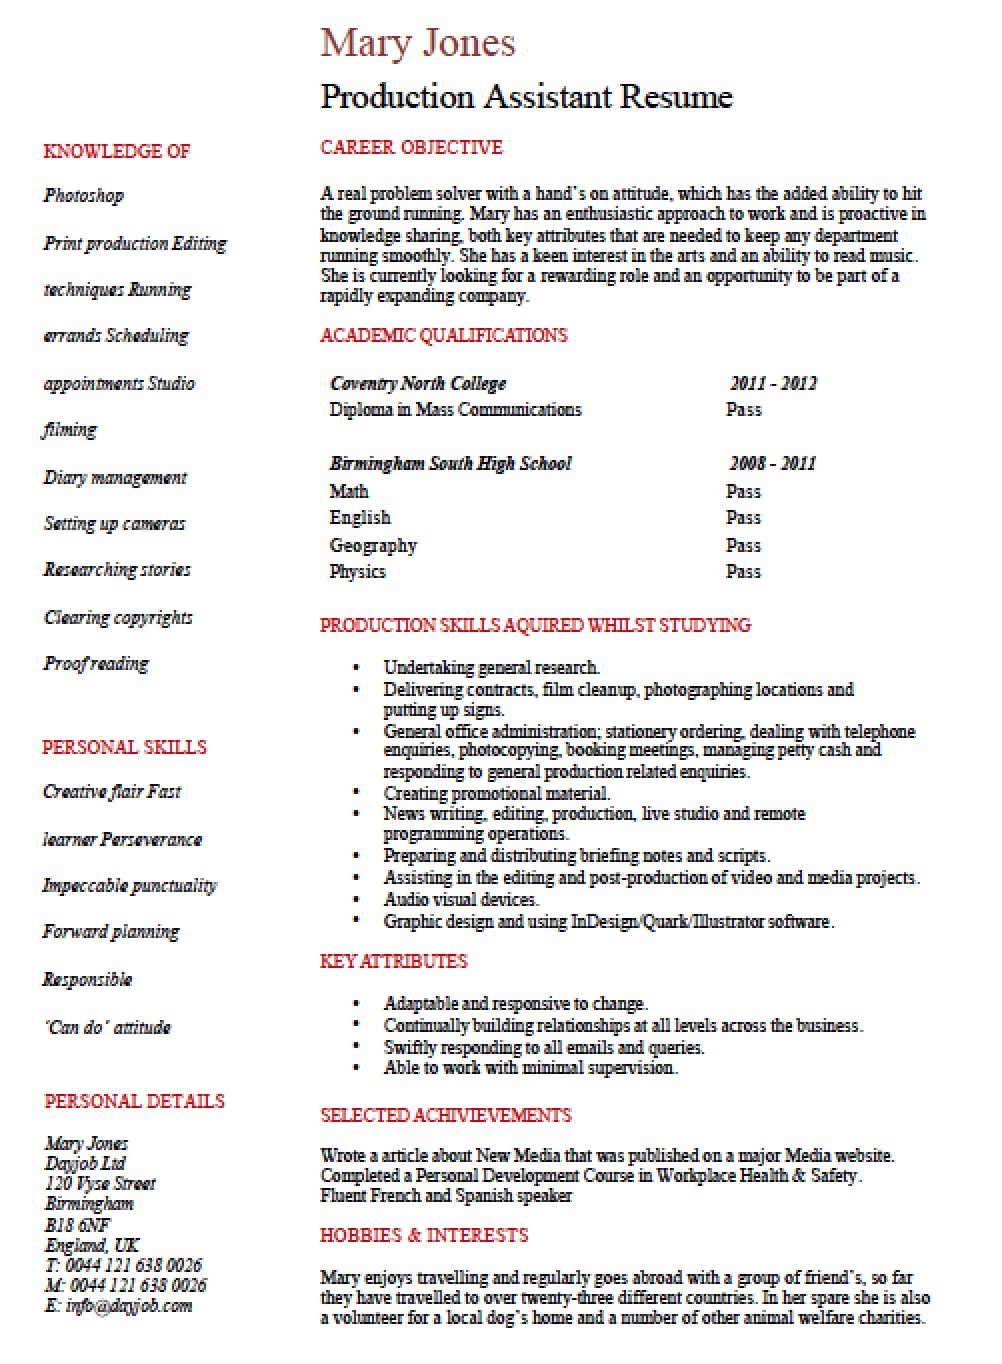 adobe pdf pdf rich text rtf microsoft word - Entry Level Resume Samples